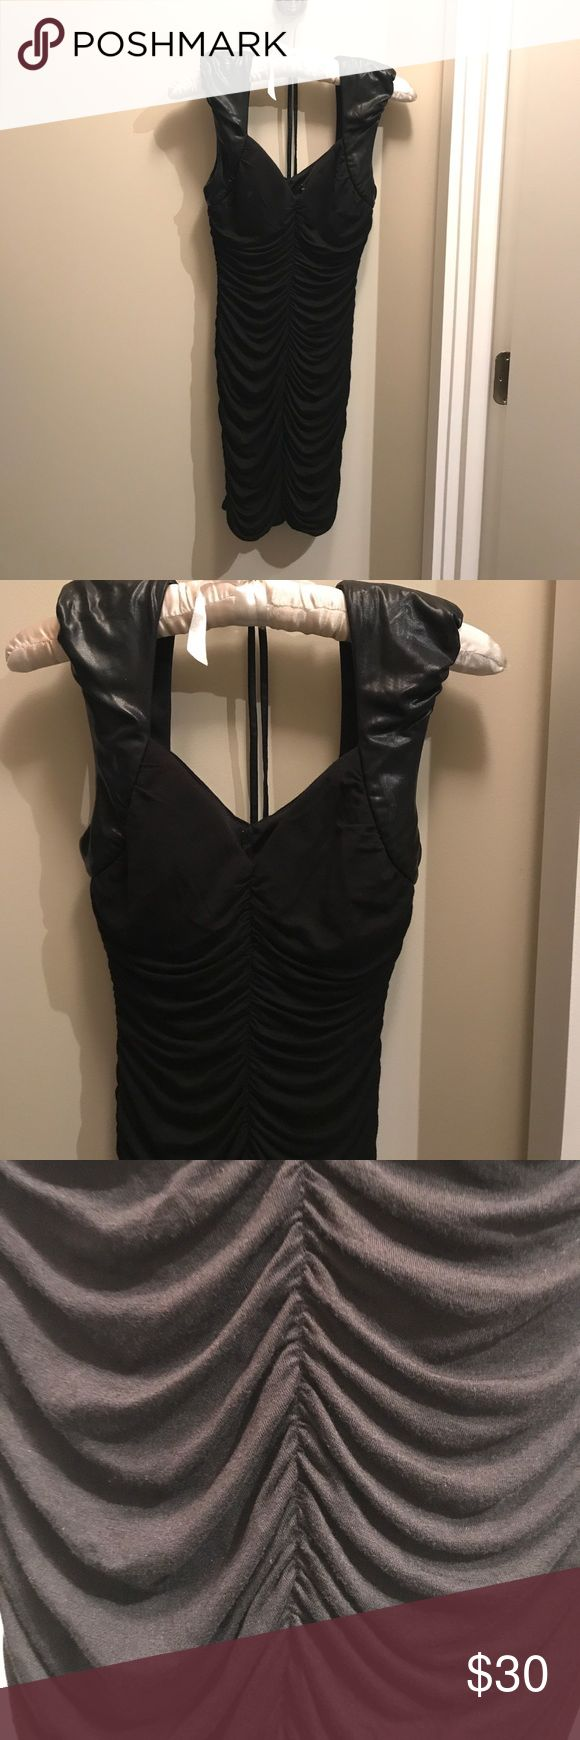 Tight Black Dress Metropark tight black dress, great condition, 95% rayon, 5% spandex, 100% polyester lining Metropark Dresses Mini